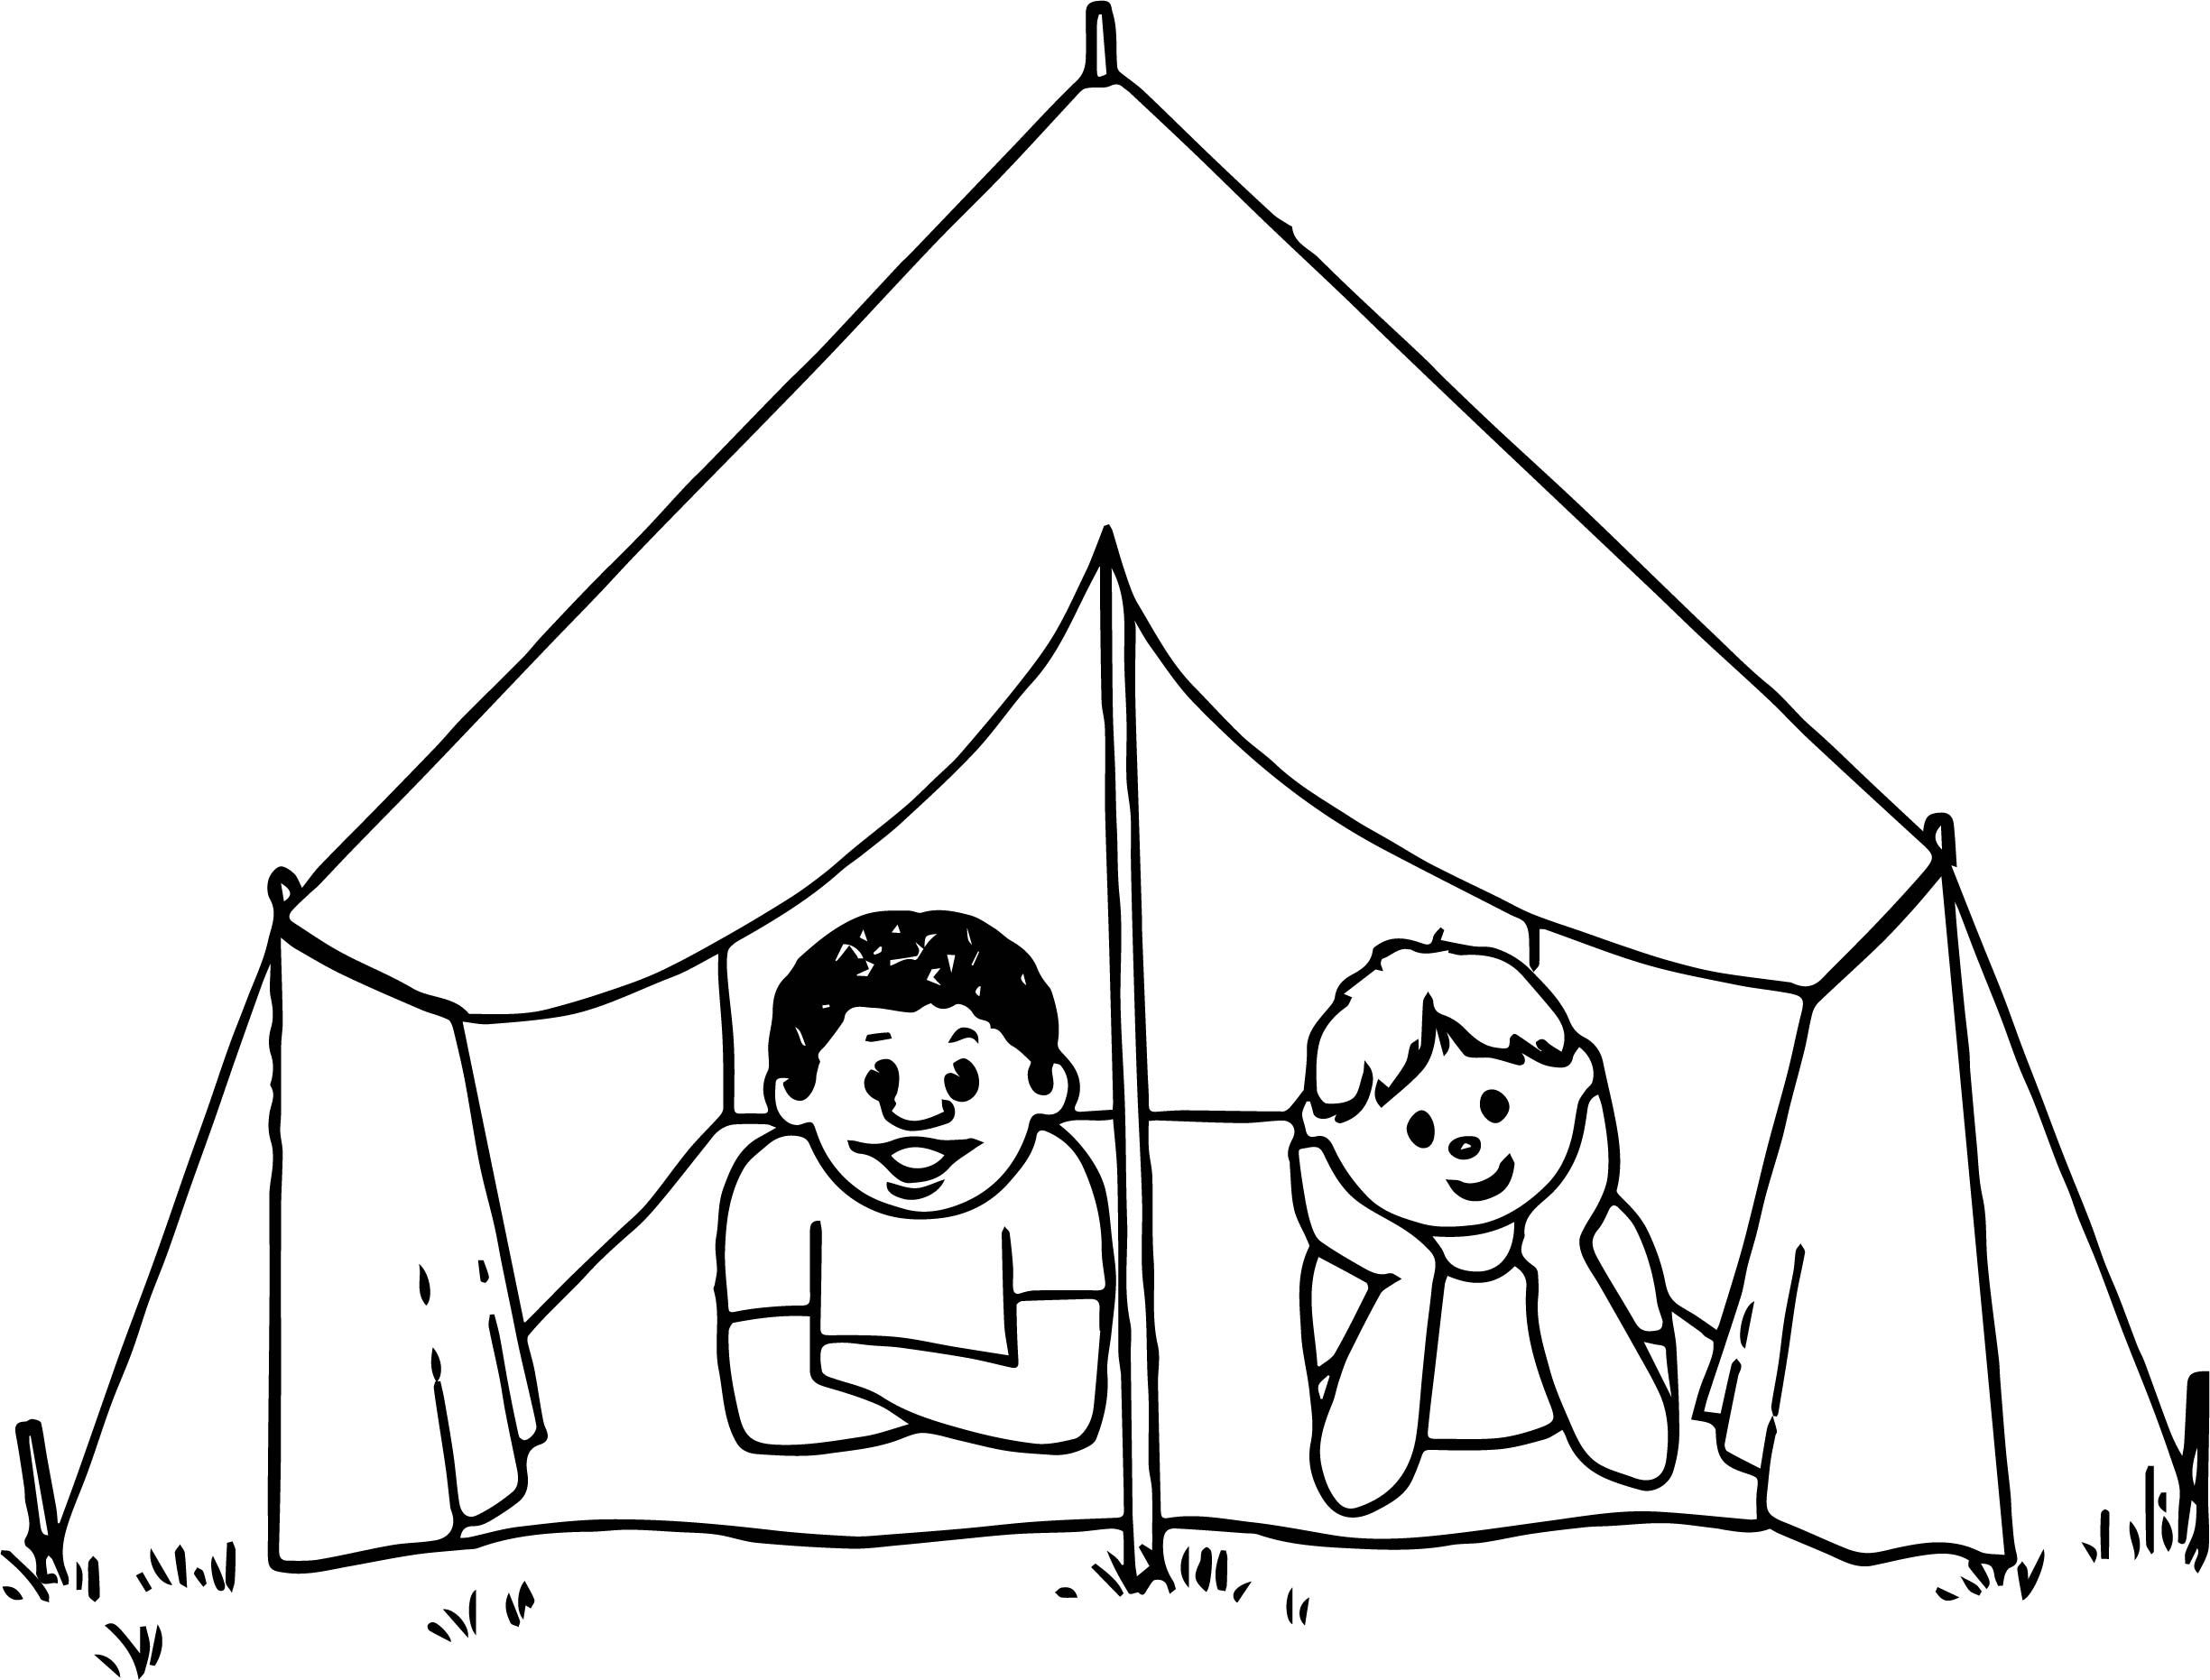 camping coloring pages for preschoolers free coloring pages printable pictures to color kids pages camping for coloring preschoolers